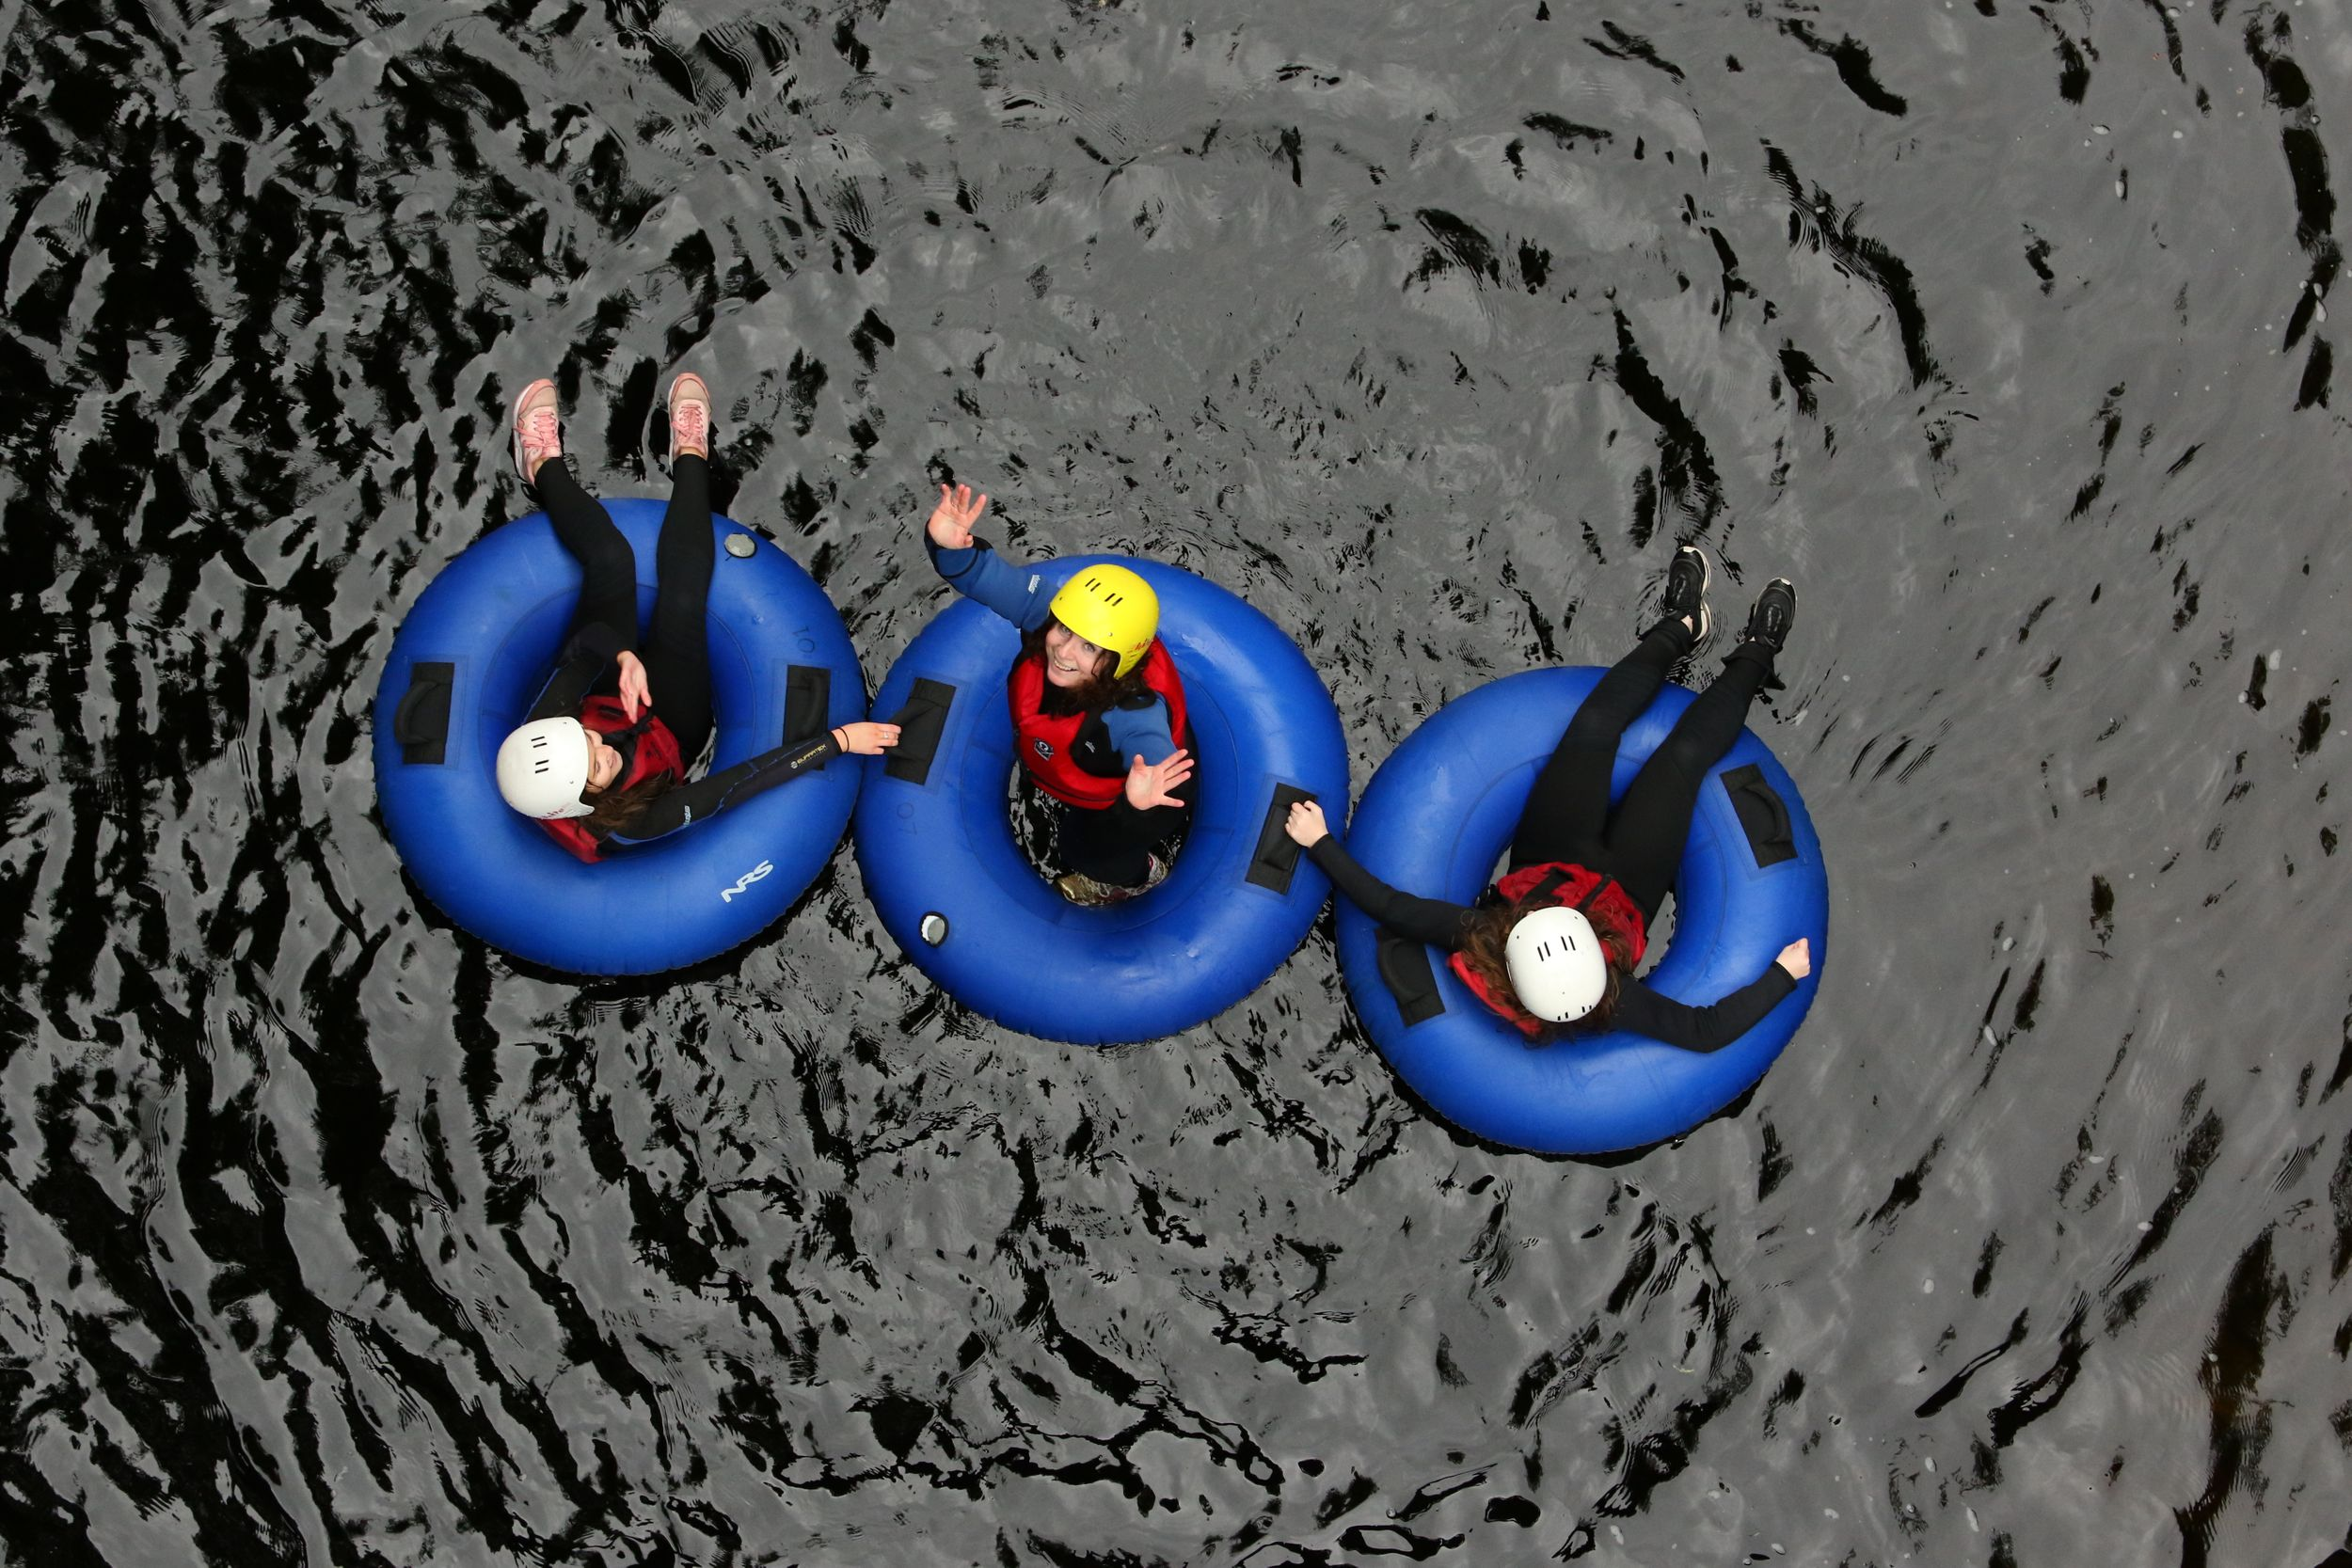 The Adventure Photographers Tubing Garry Nae Limits experience Photography